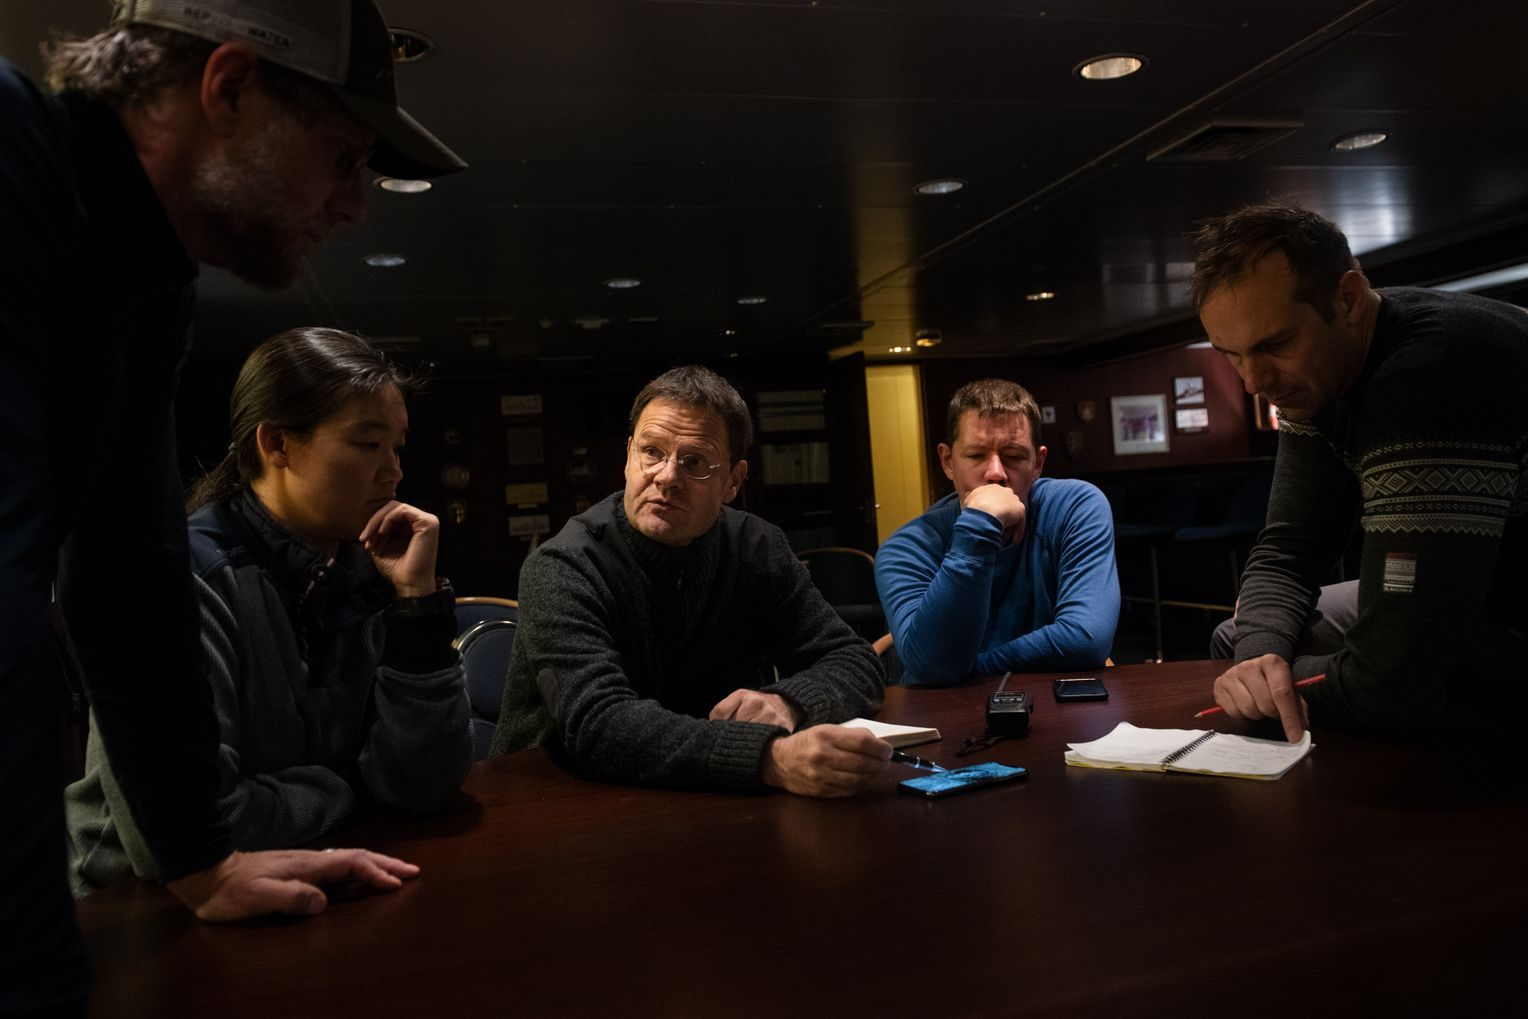 Lagebesprechung auf dem Schiff: Matthew Shupe, Allison Fong, Expeditionsleiter Markus Rex, Stefan Hendricks and Gunnar Spreen. Foto: Esther Horvath